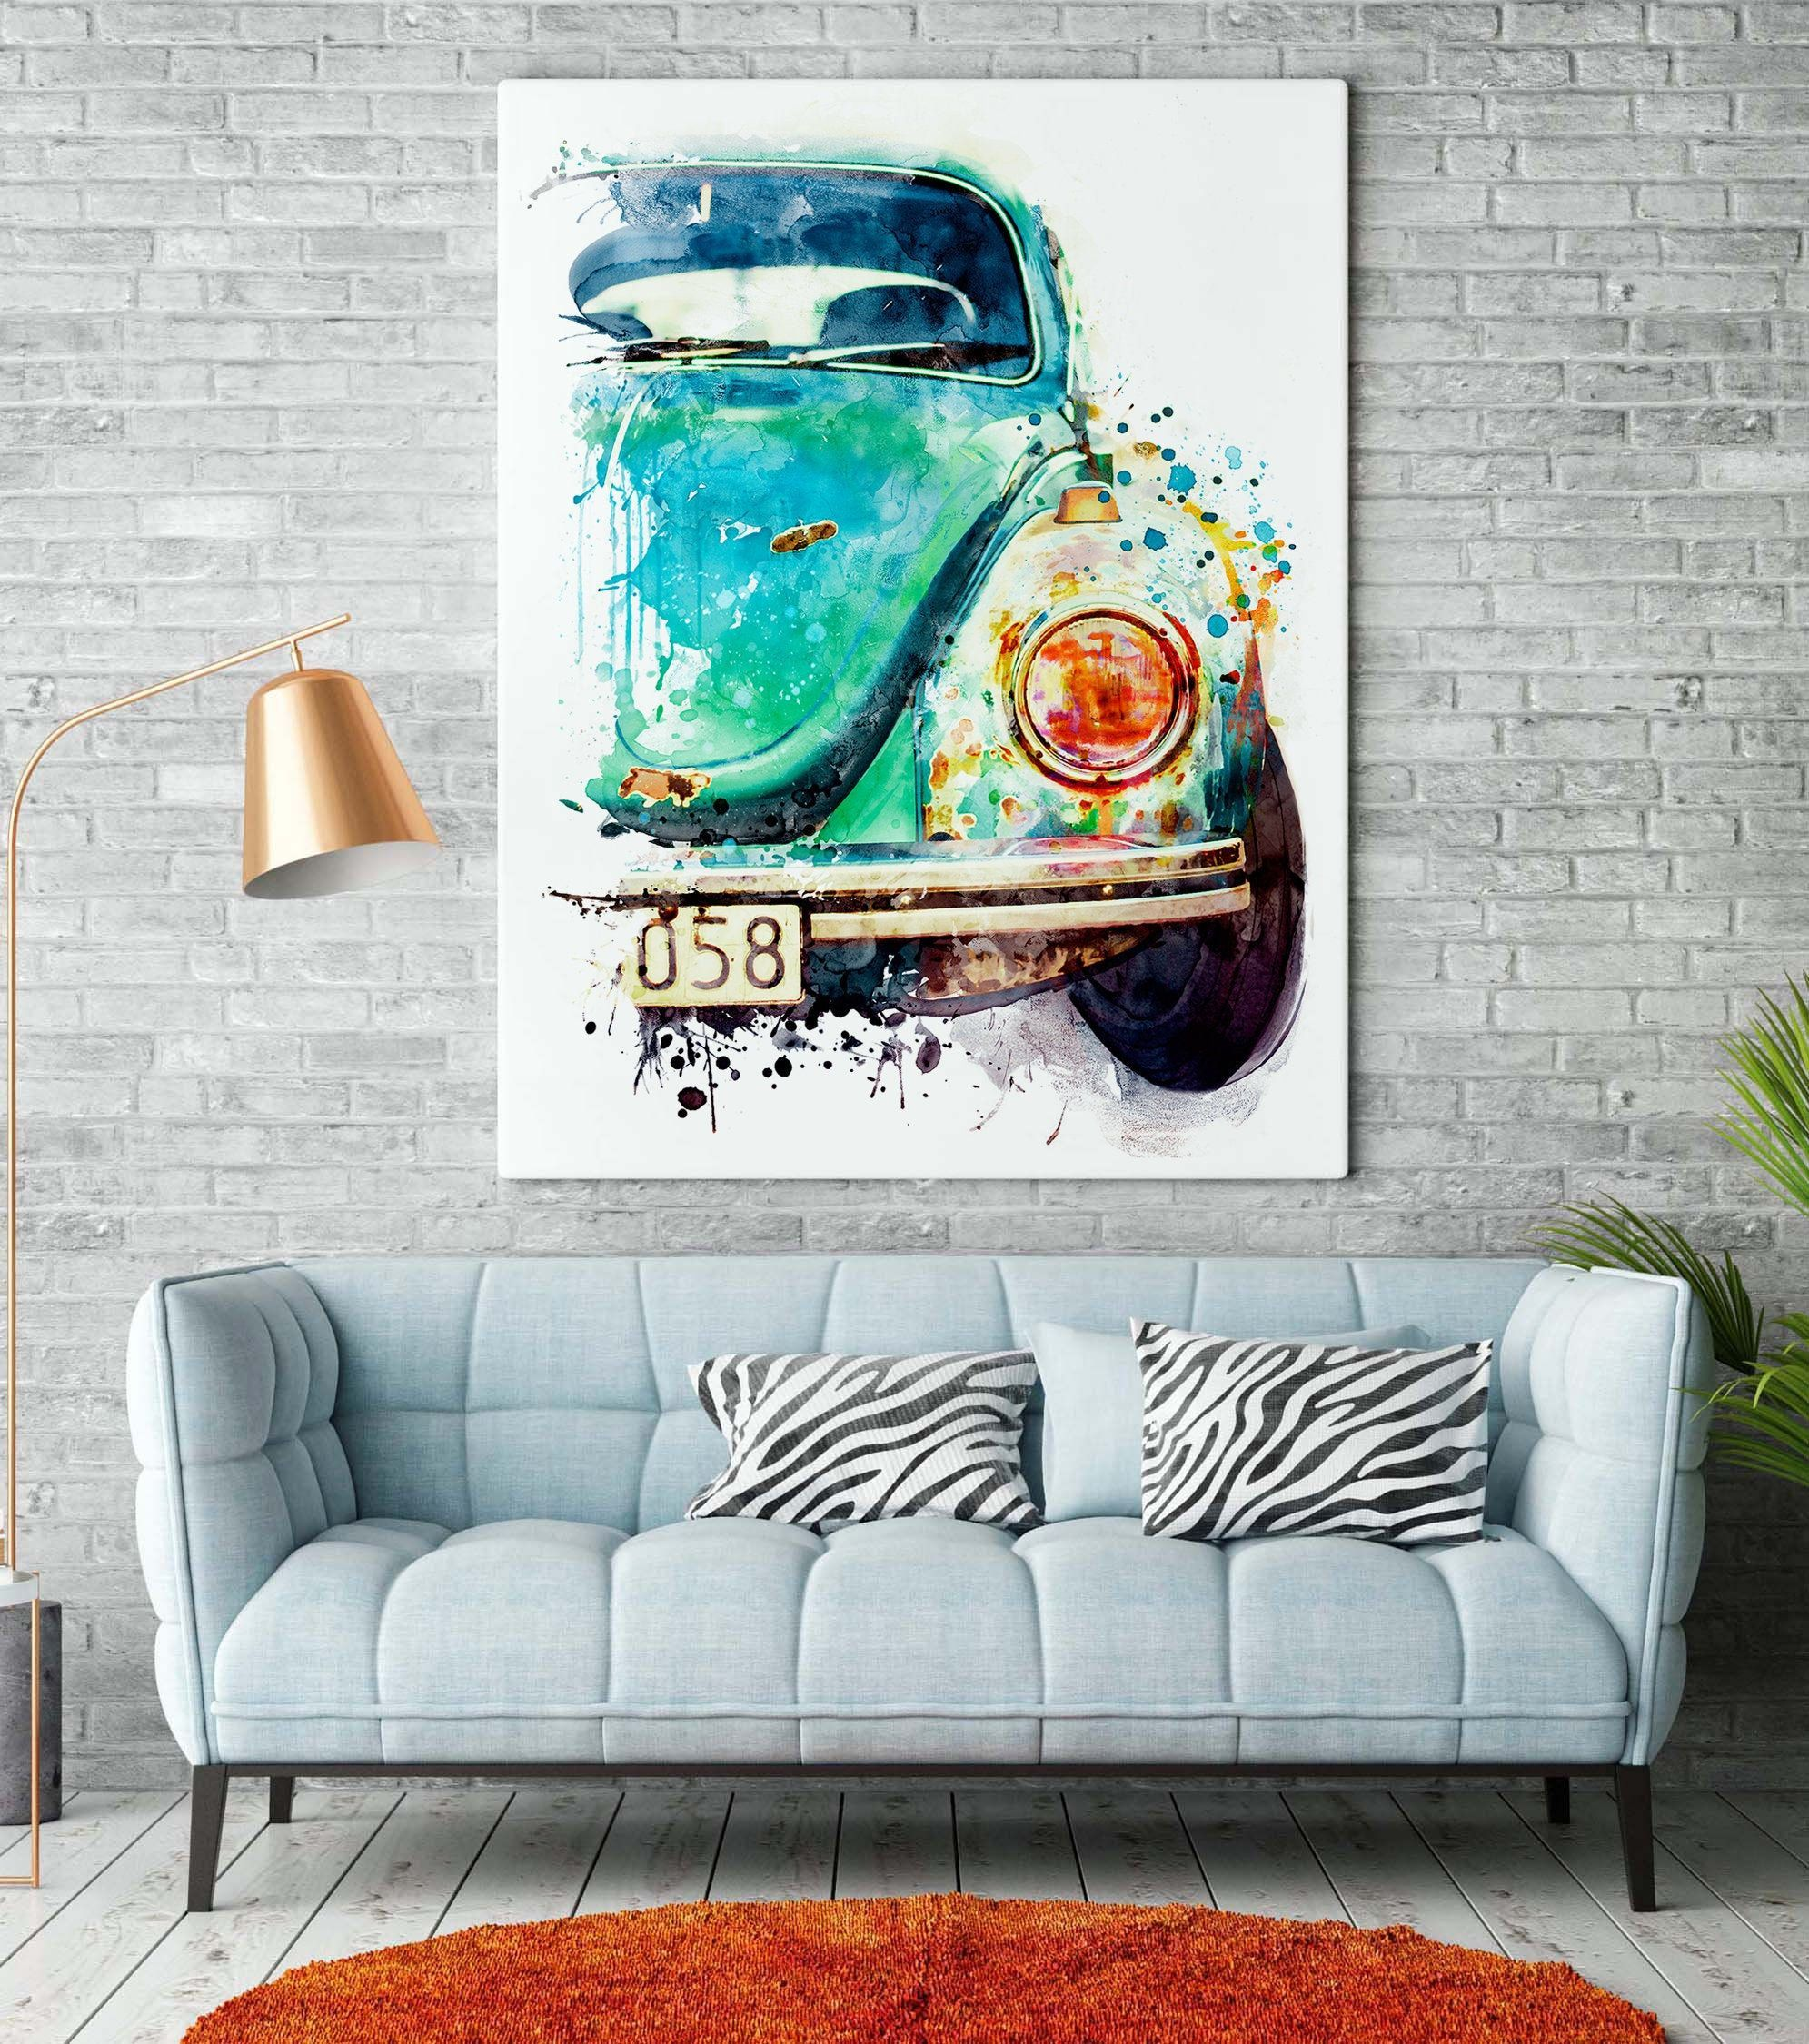 German Vintage Car, Watercolor Painting, Automobile poster, Affordable Car Decor…